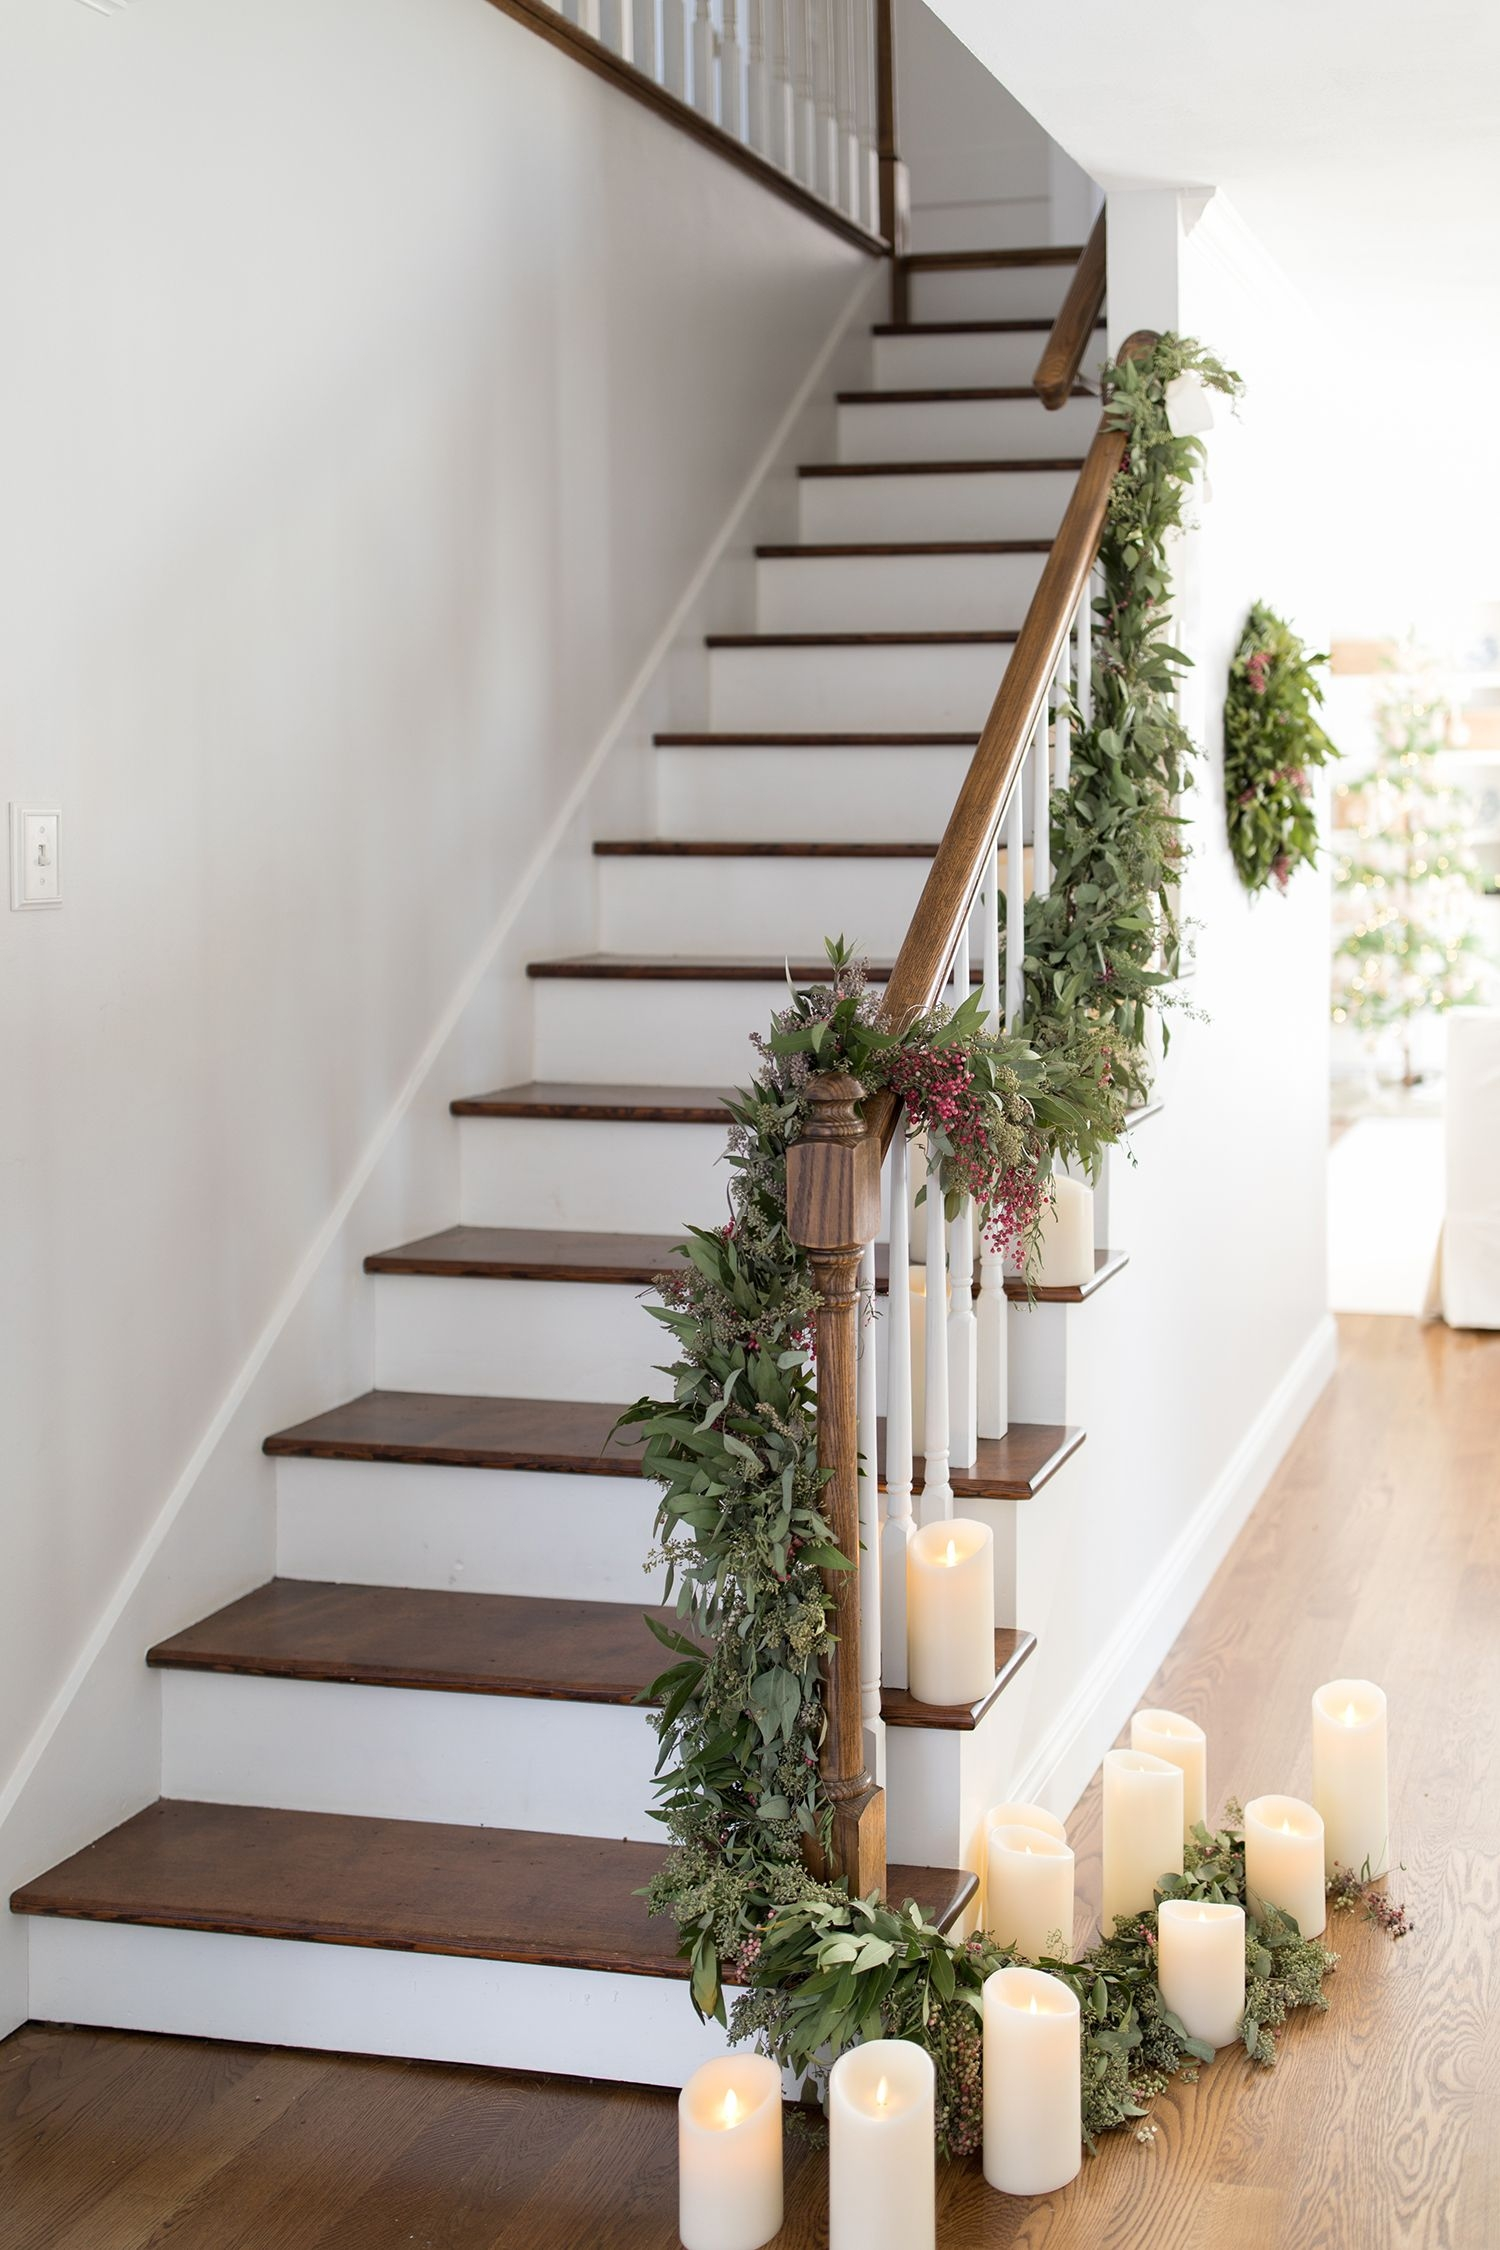 15 Best Christmas Staircase Decorating Ideas Xmas Stair Decor 2019 | Front Stairs Designs With Landings | 3 Step Stair | Outdoor | Granite | Small Space | Front Yard Stair